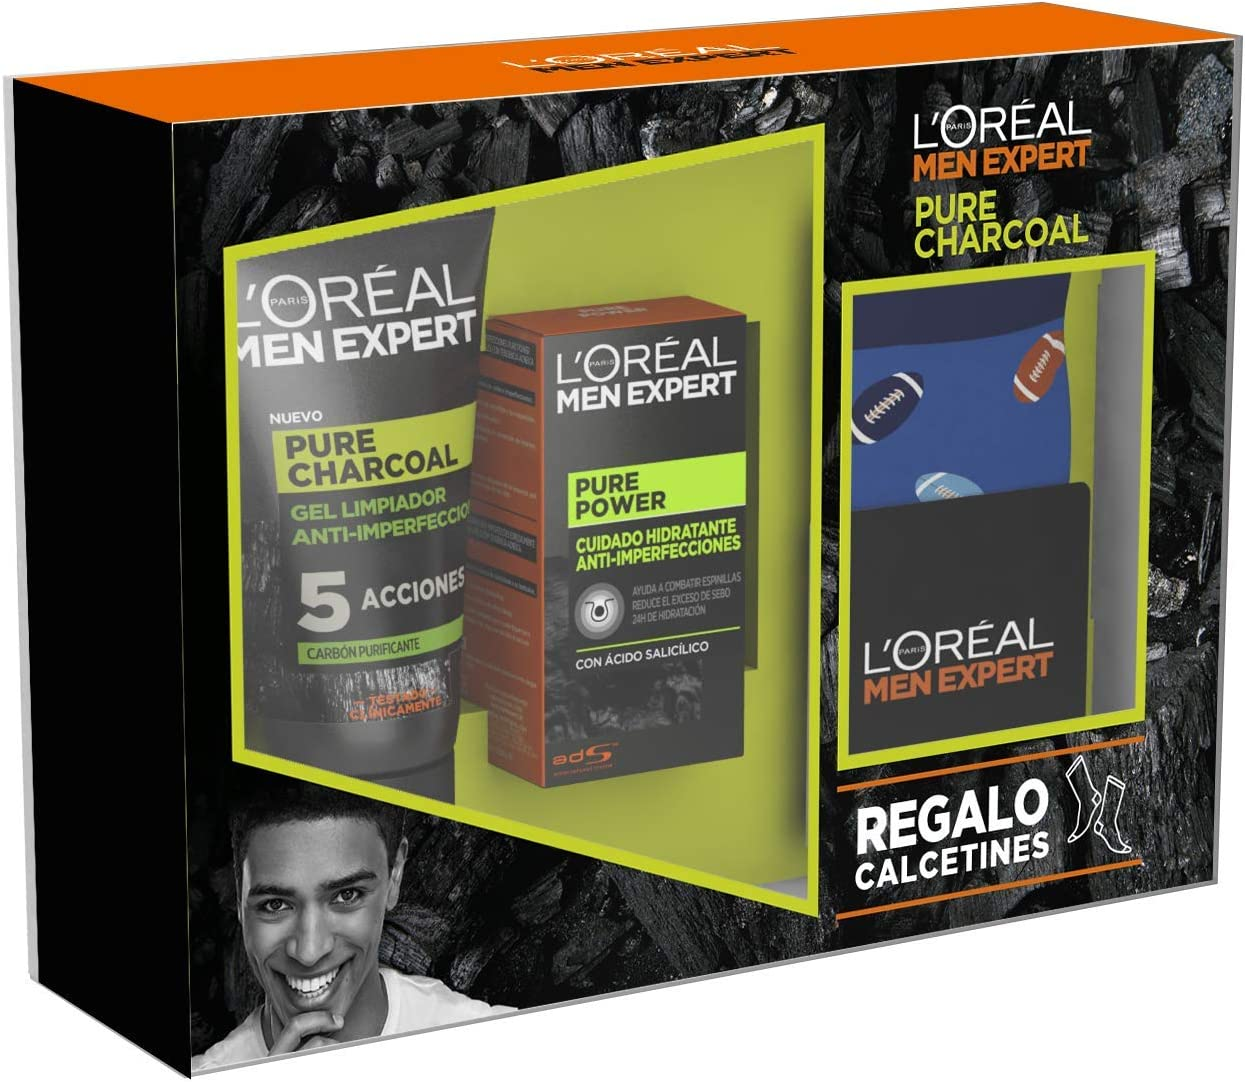 L'Oréal Men Expert - Pack con Crema hidratante Pure Power 50 ml y Limpiador Pure Charcoal 100 ml